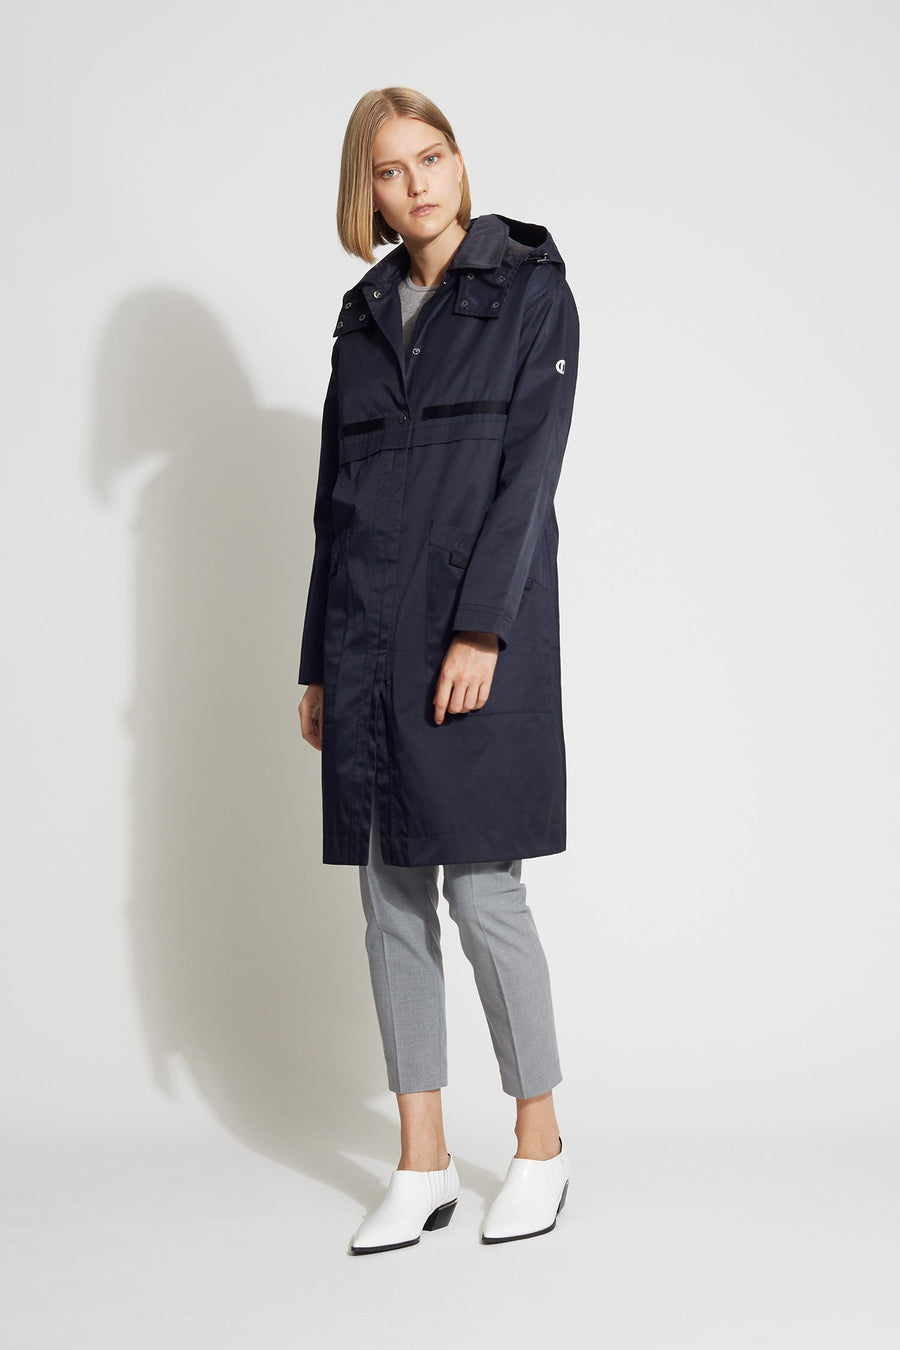 Long Hooded Raincoat - Bernardo Fashions